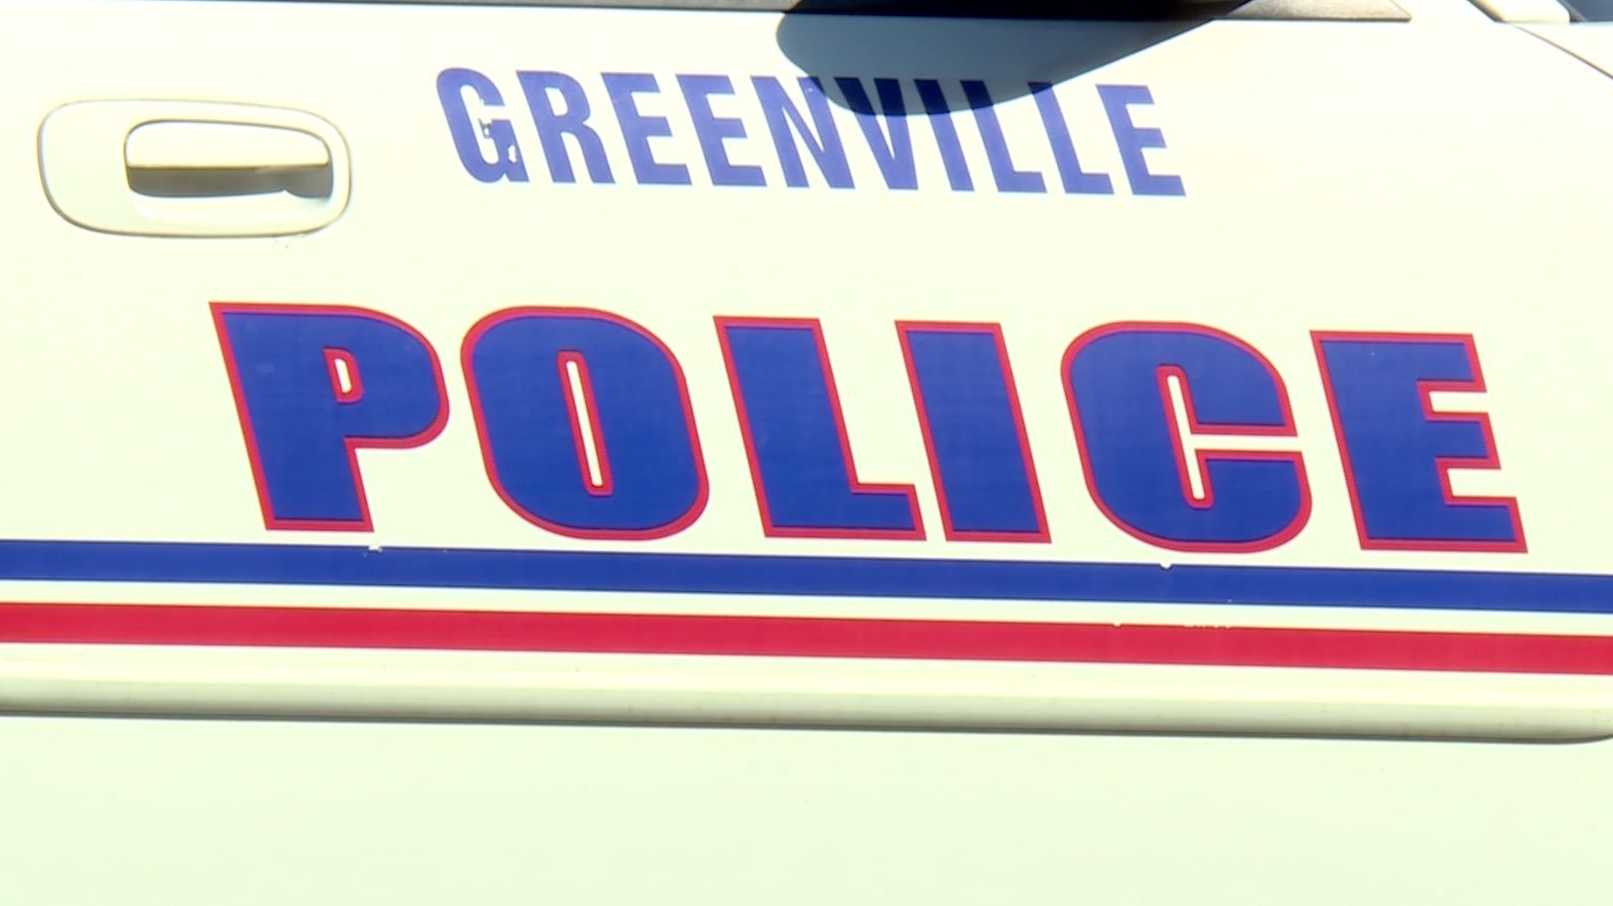 Greenville Police car